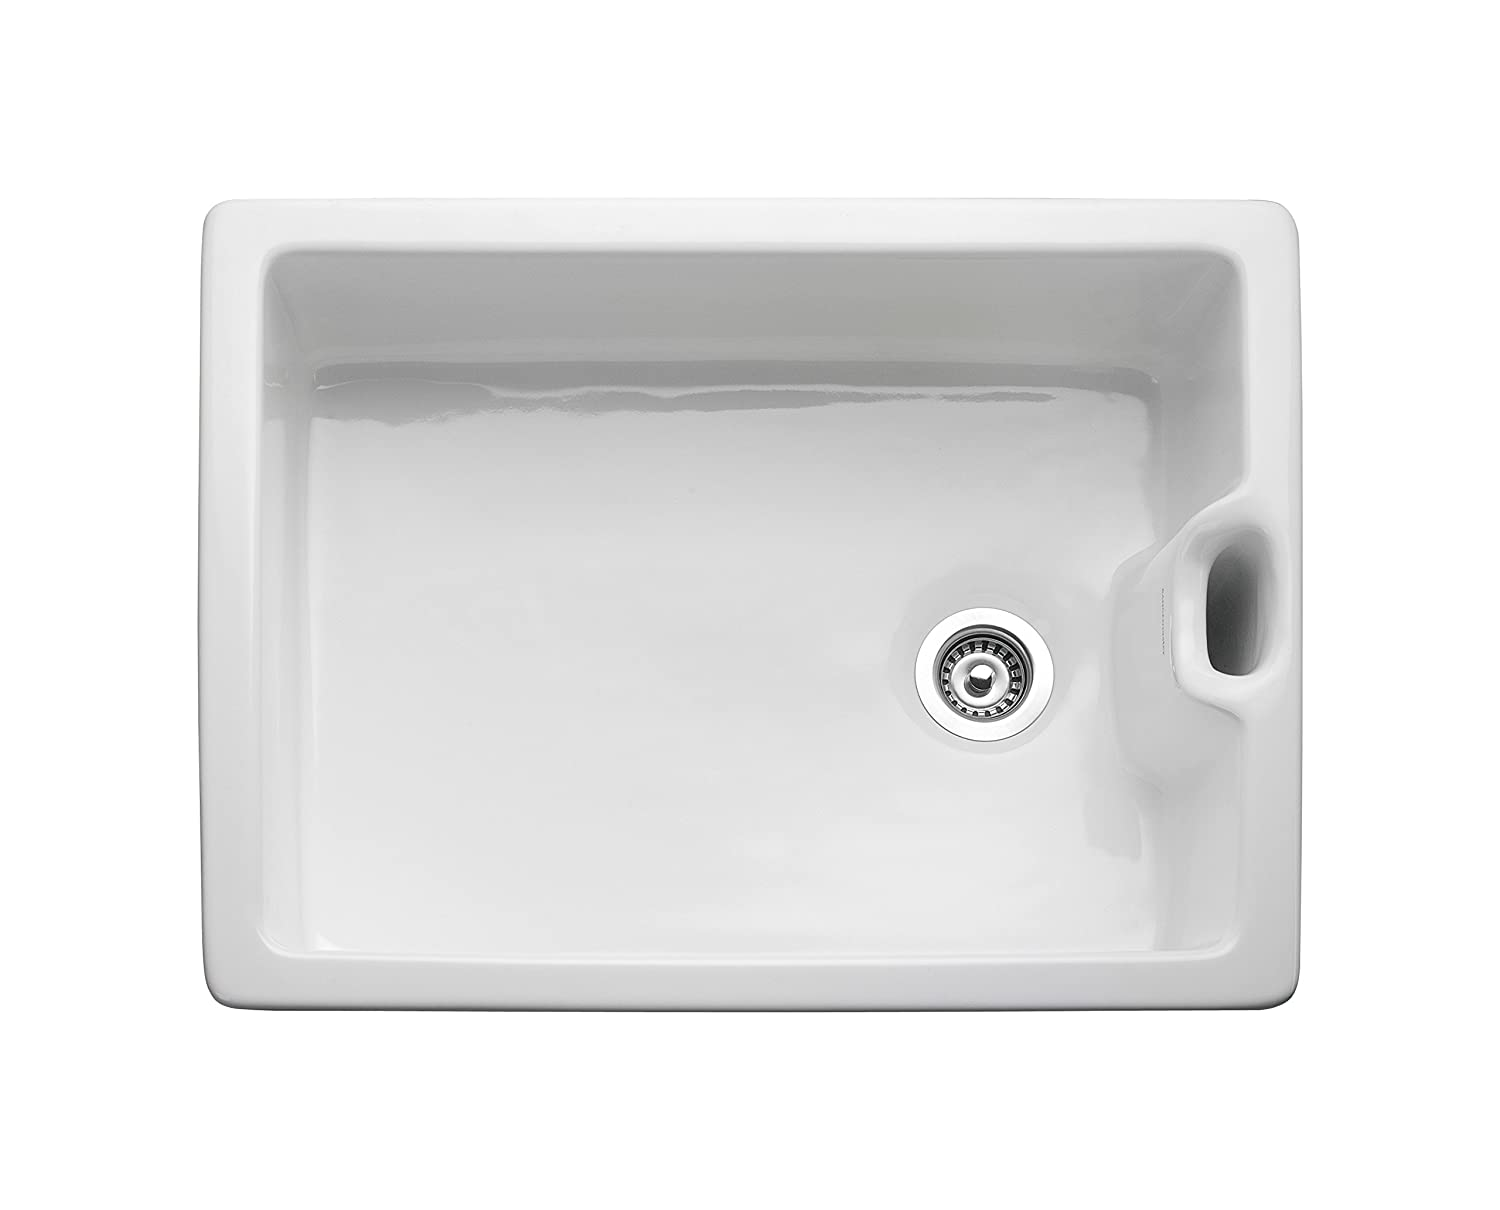 Rangemaster Sink collection - Available in a variety of Styles ...